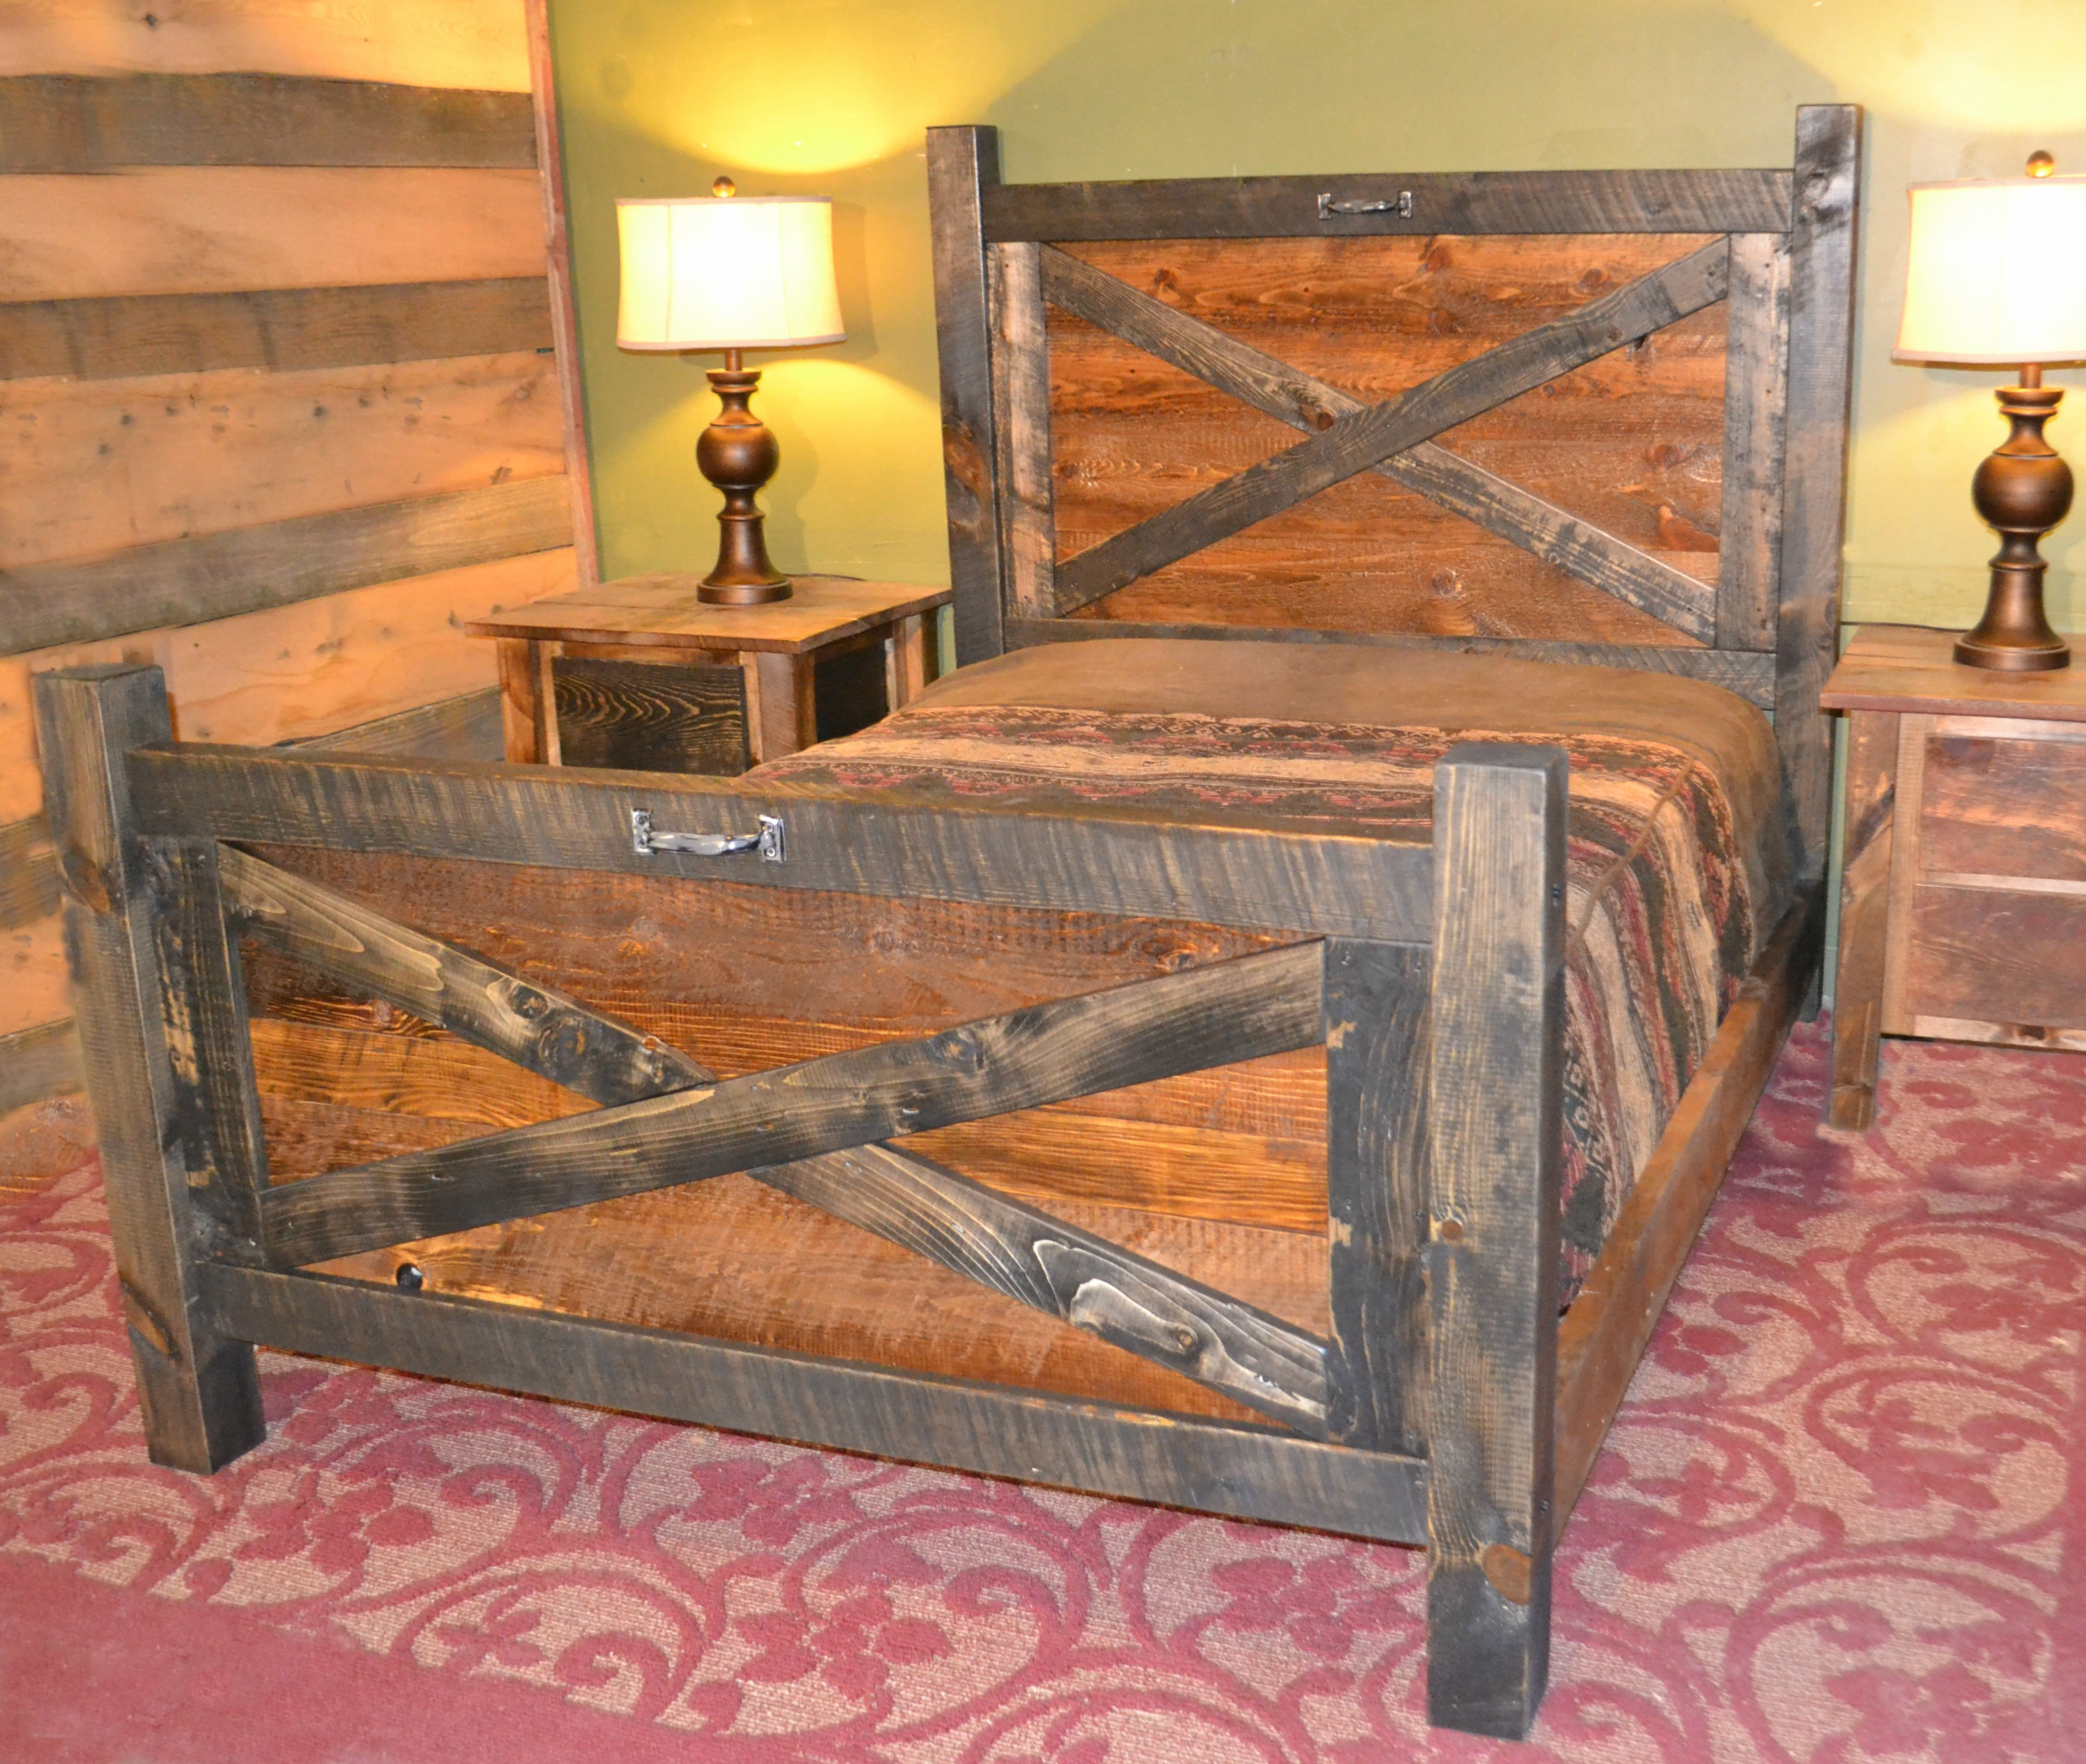 Barn Door Bed Rustic Furniture Mall By Timber Creek